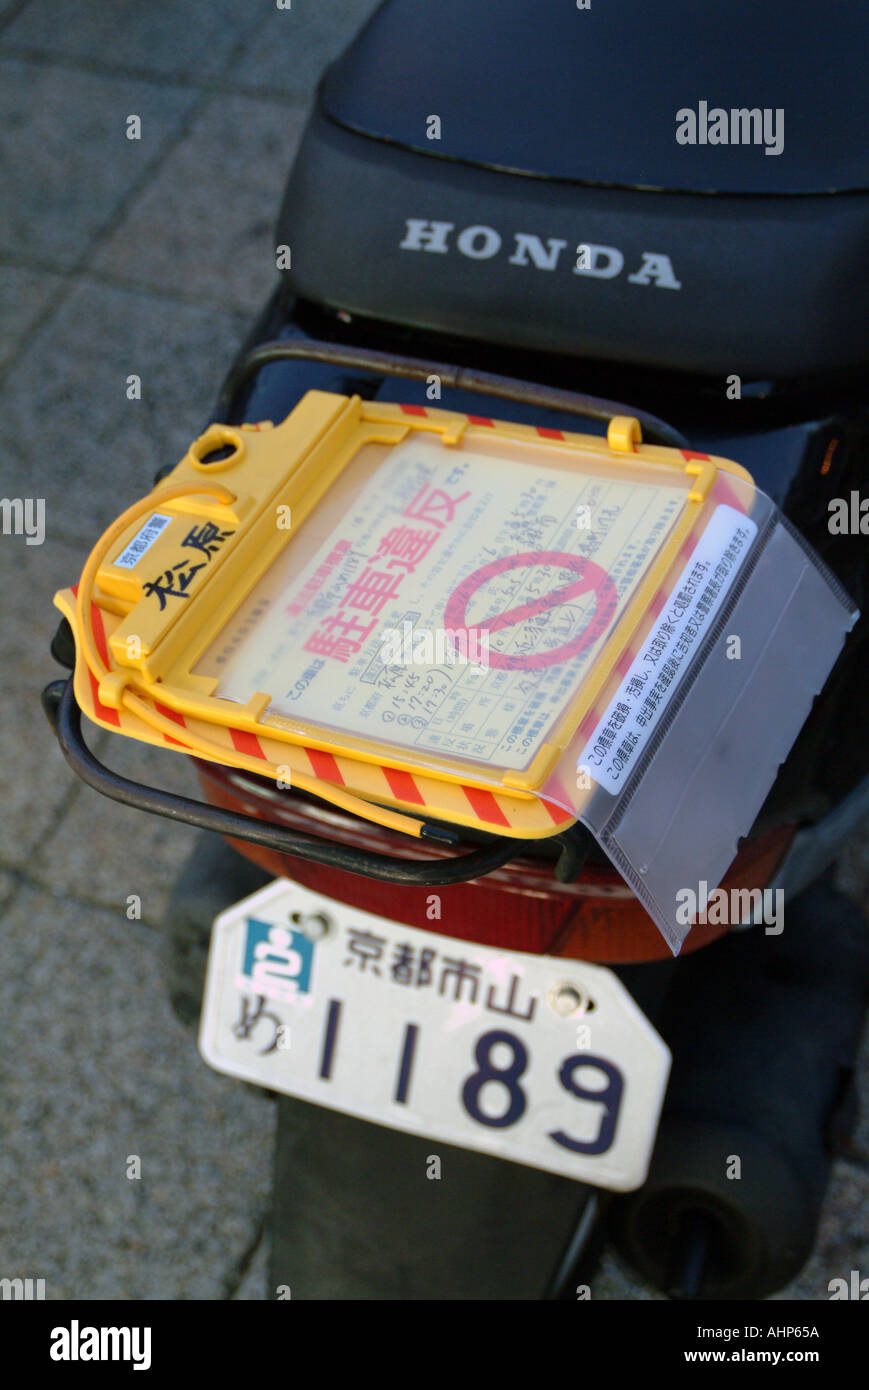 Parking ticket on a scooter Kyoto Japan - Stock Image